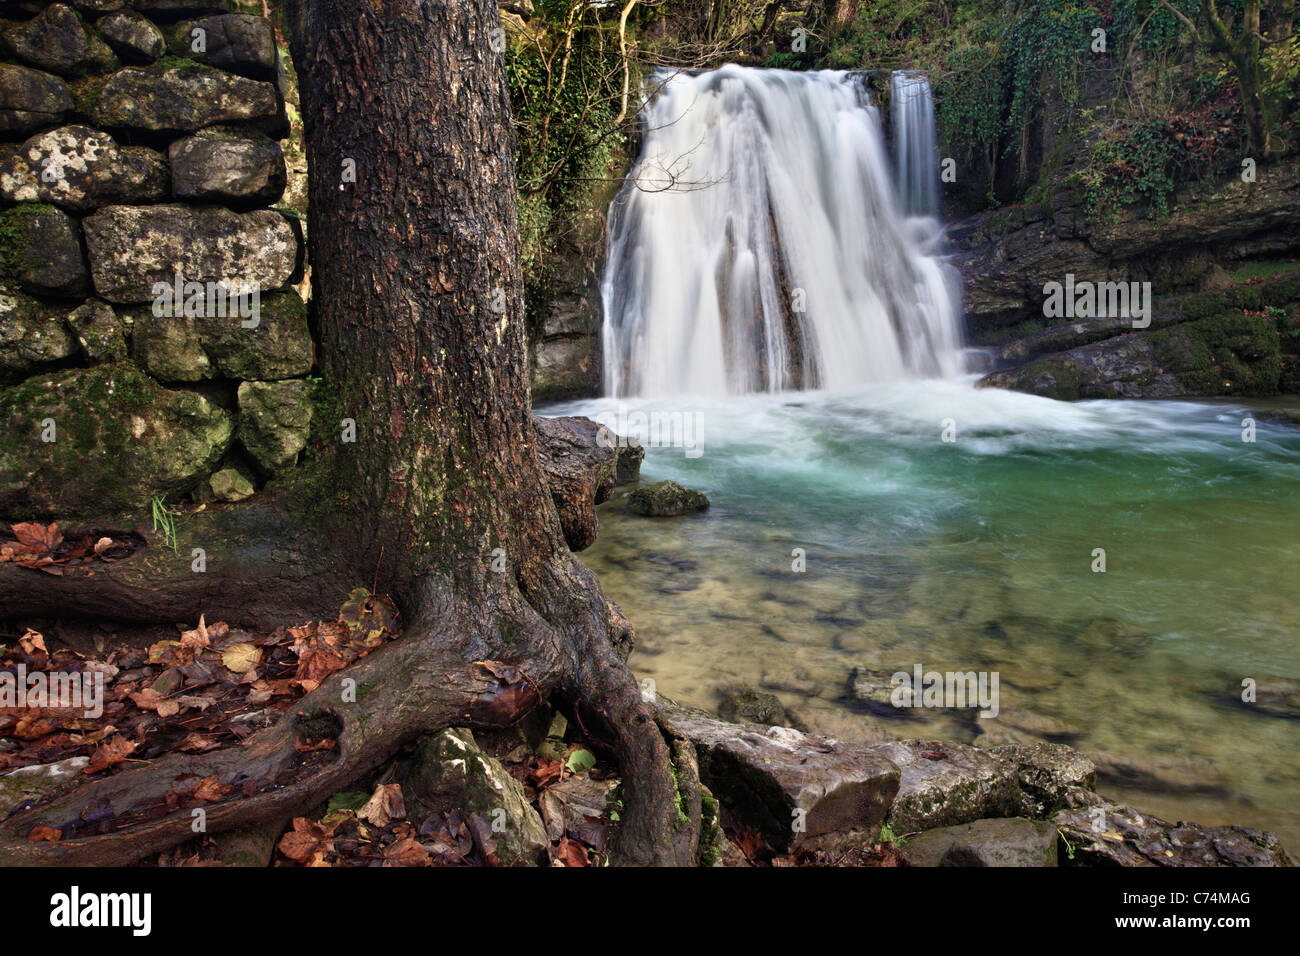 Picturesque waterfall known as 'Janets Foss' in Malhamdale in the Yorkshire Dales of England - Stock Image